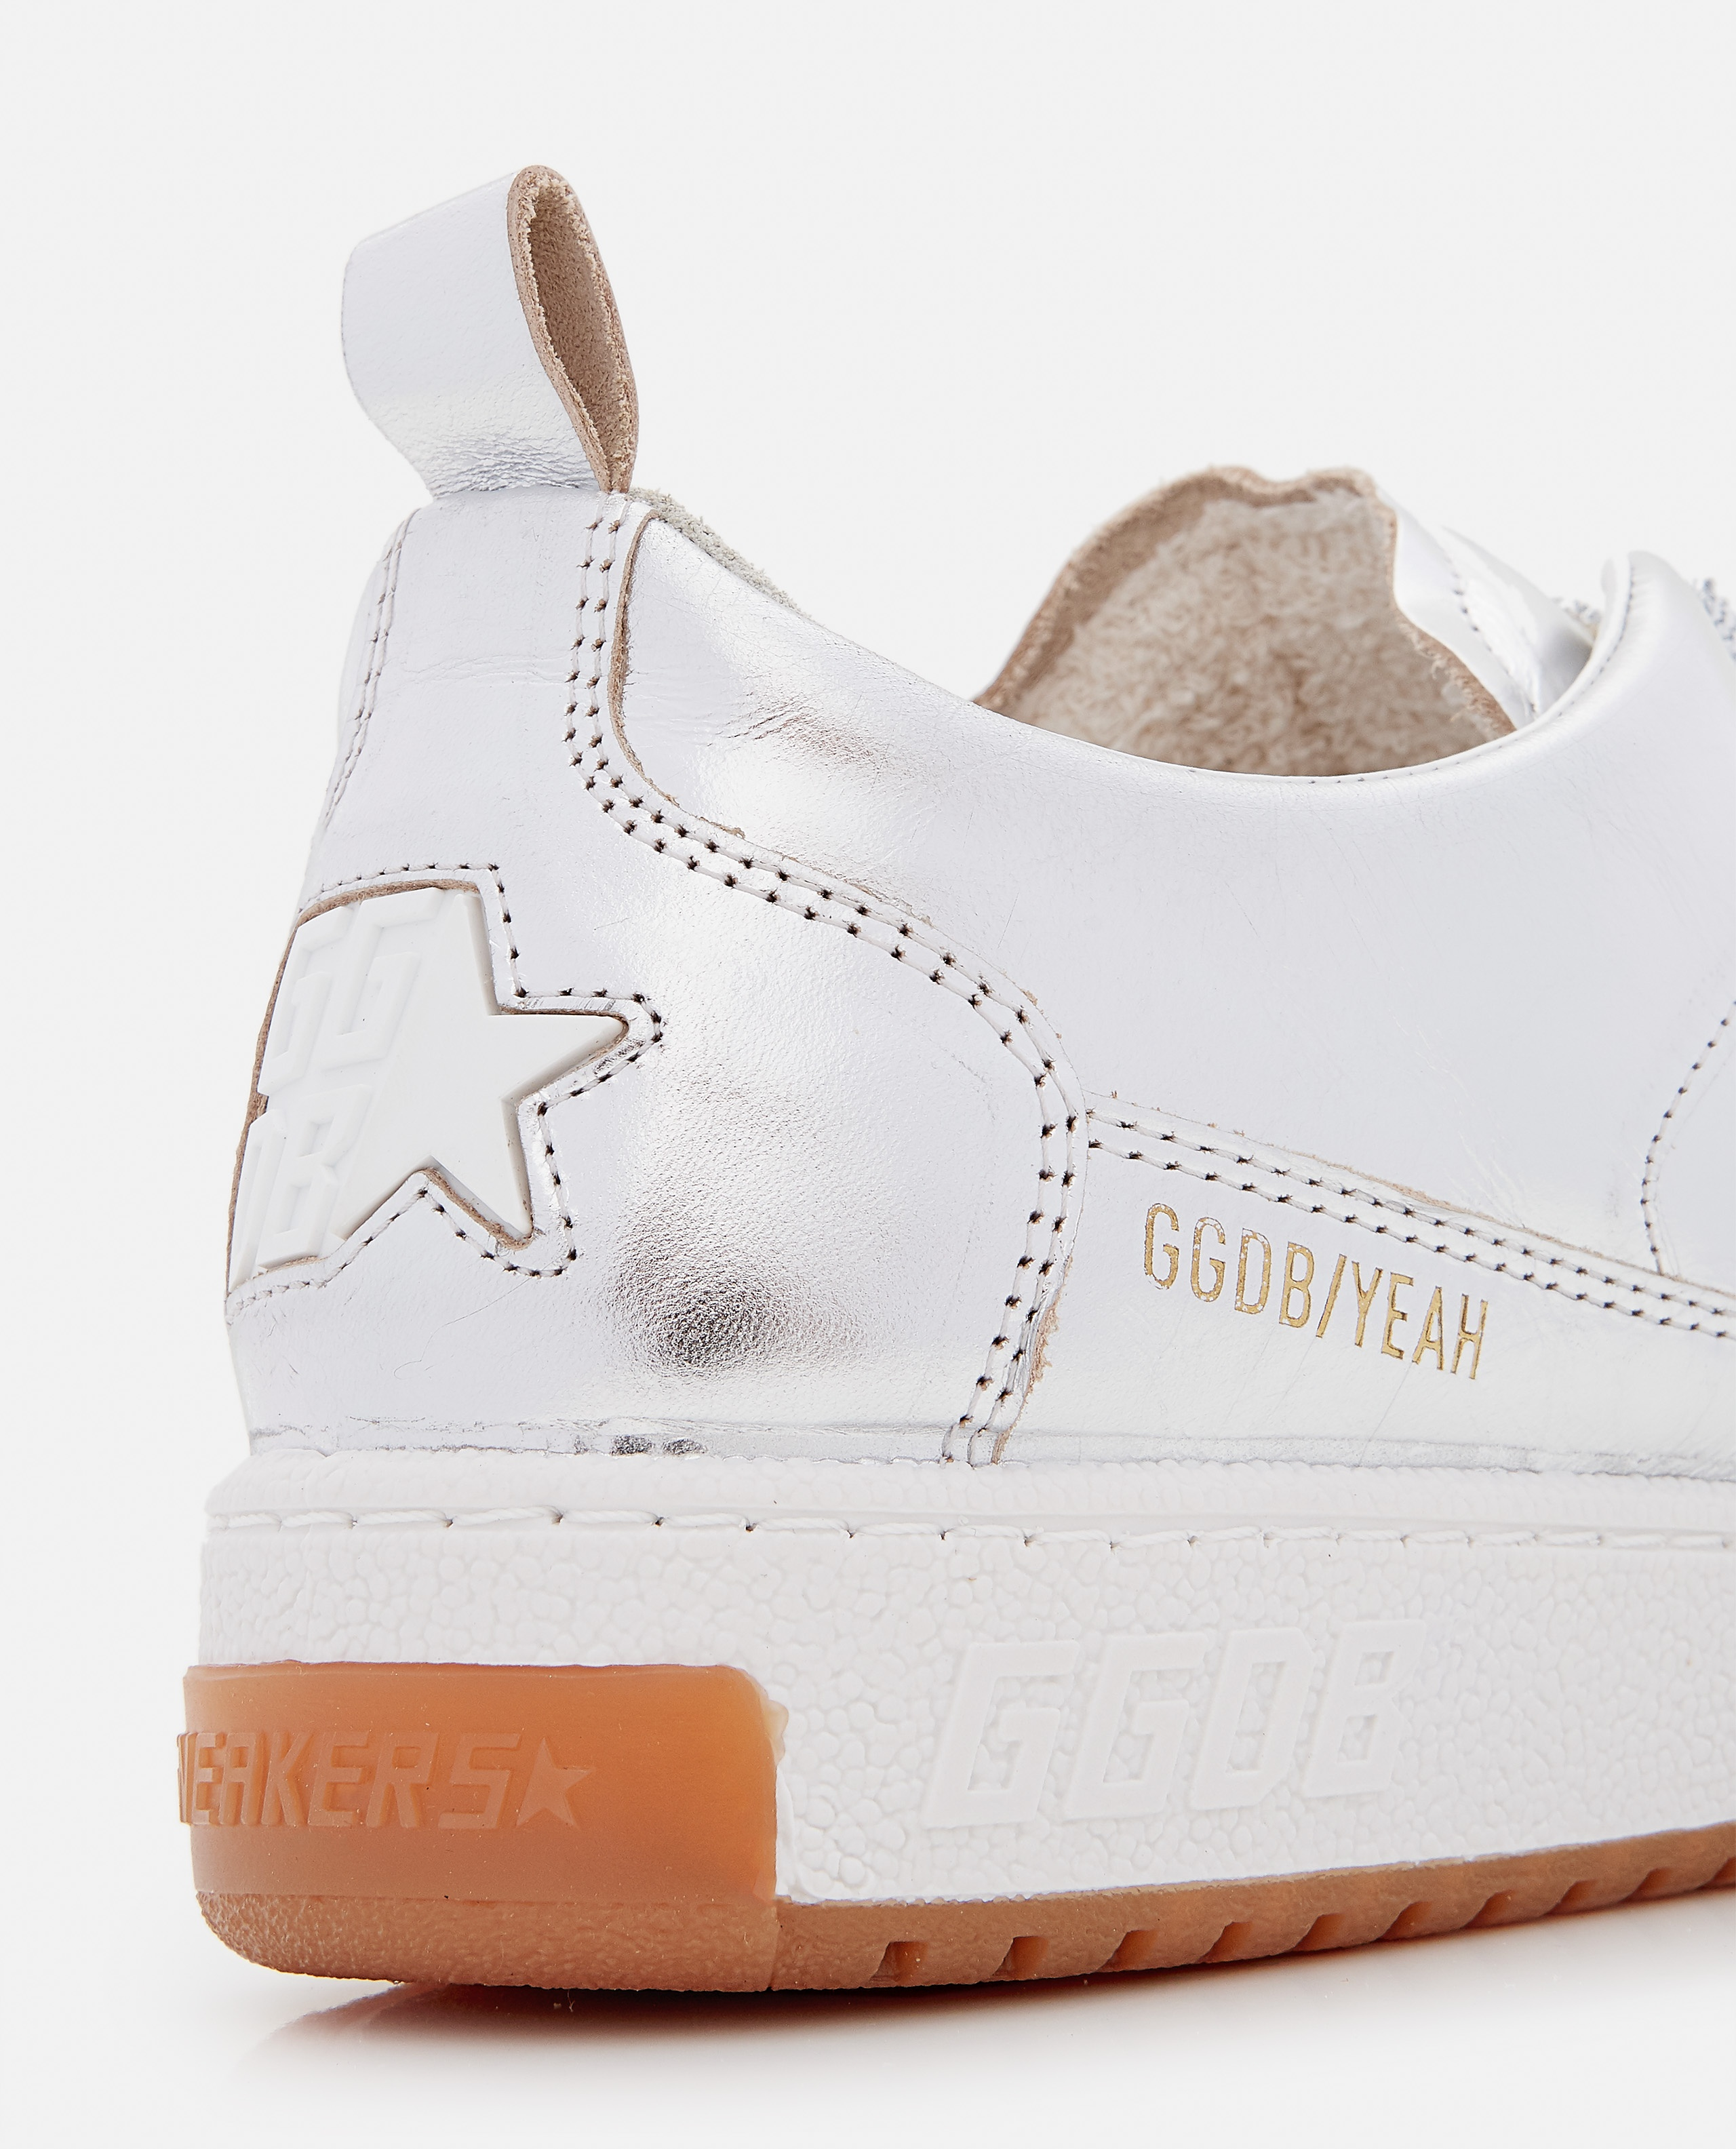 YEAH LAMINATED LEATHER SNEAKERS Women Golden Goose 000322260047121 4